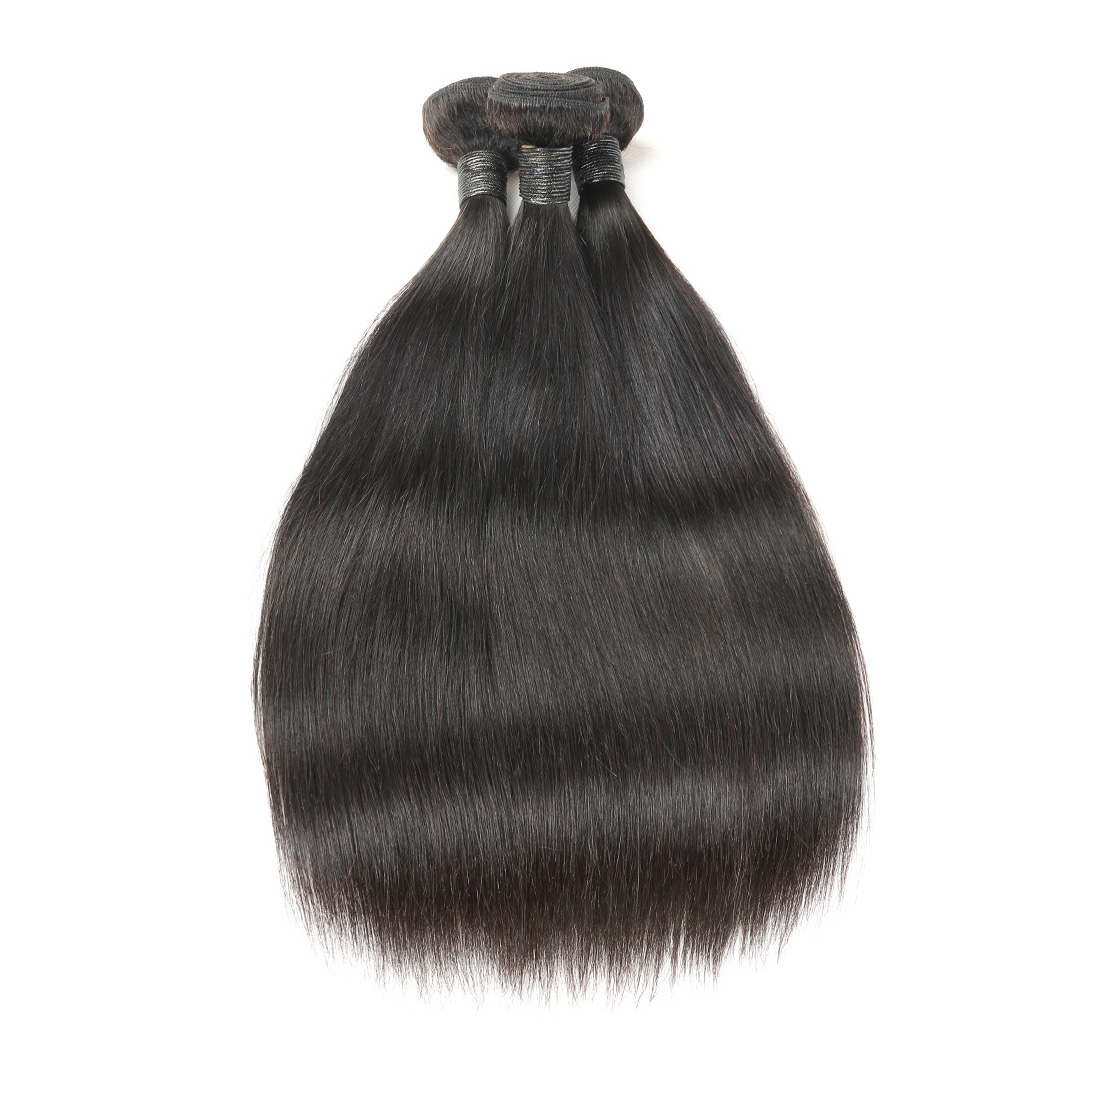 100 percent indian remy human hair,9A indian hair raw unprocessed virgin,100% natural indian human hair price list, Natural black 1b;1#;1b;2#;4# and etc